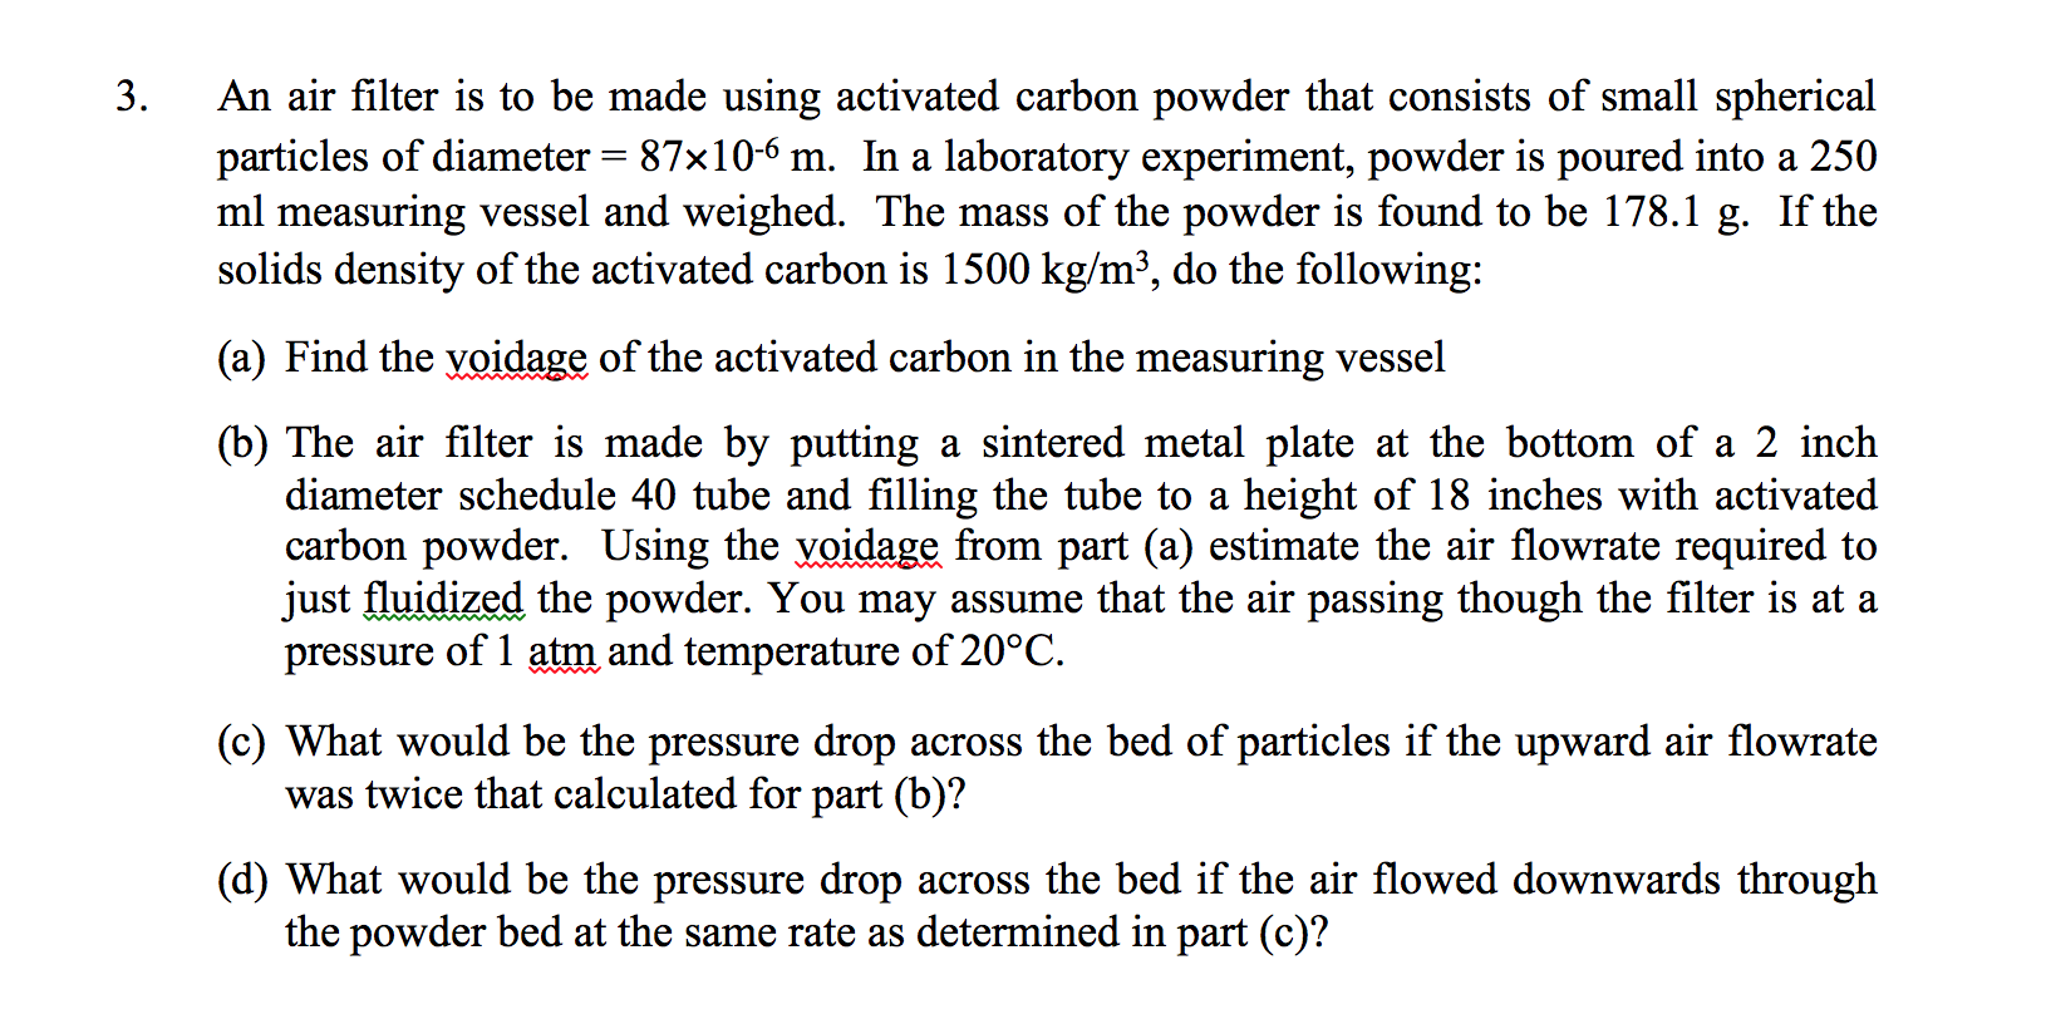 An Air Filter Is To Be Made Using Activated Carbon